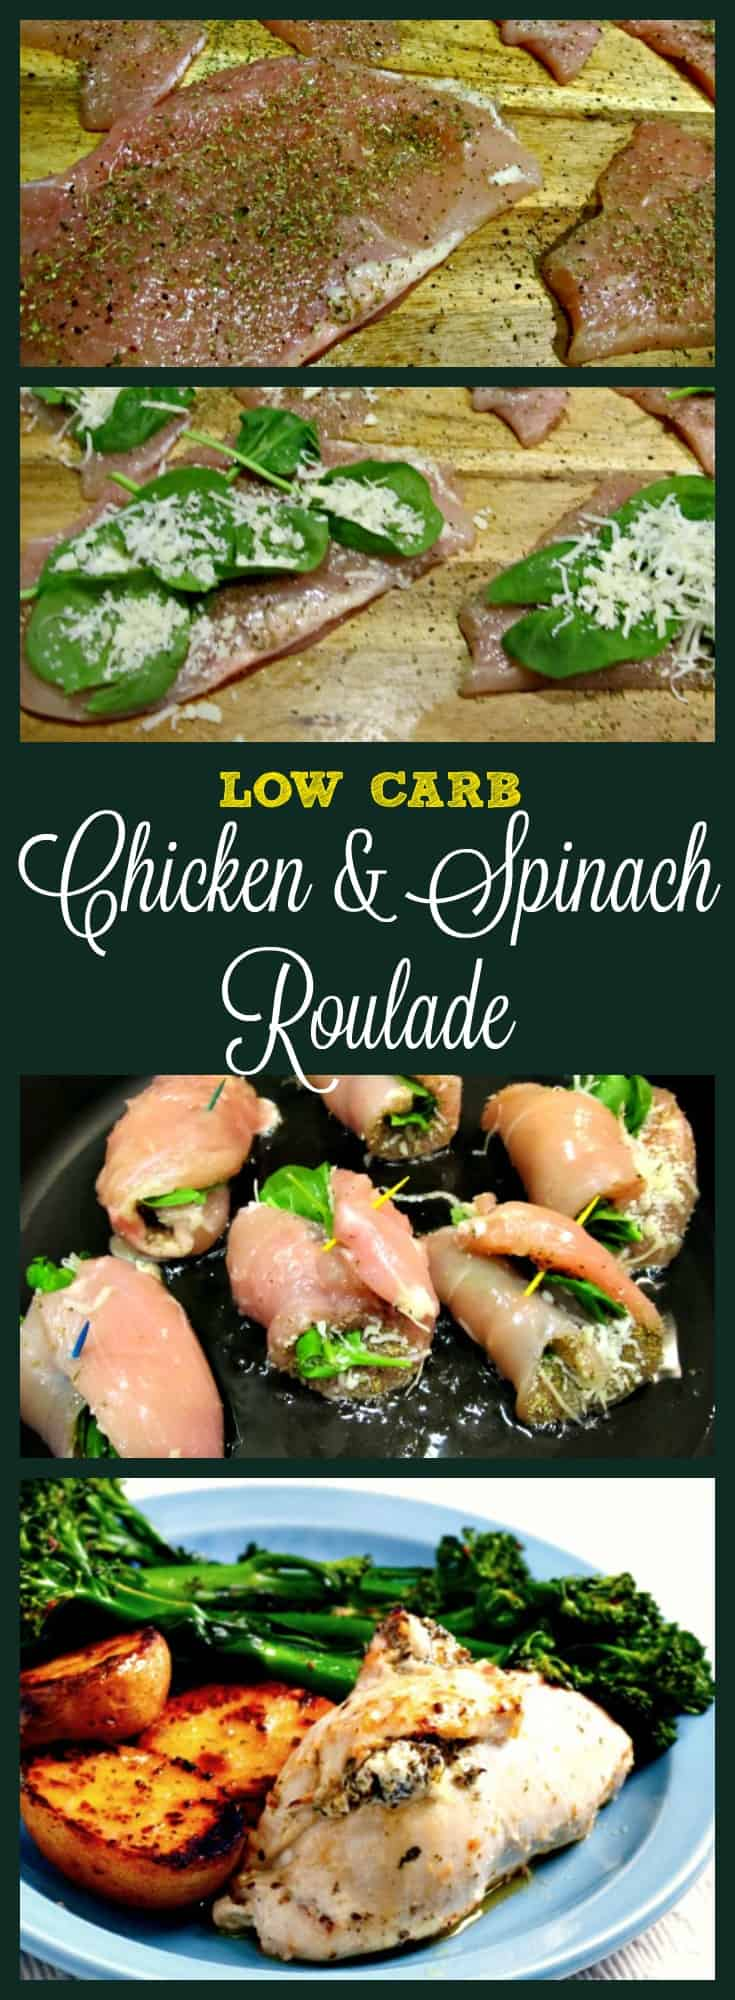 A low-carb meal the whole family can enjoy. Plus, tips to make this as part of OAMC, batch cooking, or freeze and reheat to save time in the kitchen.